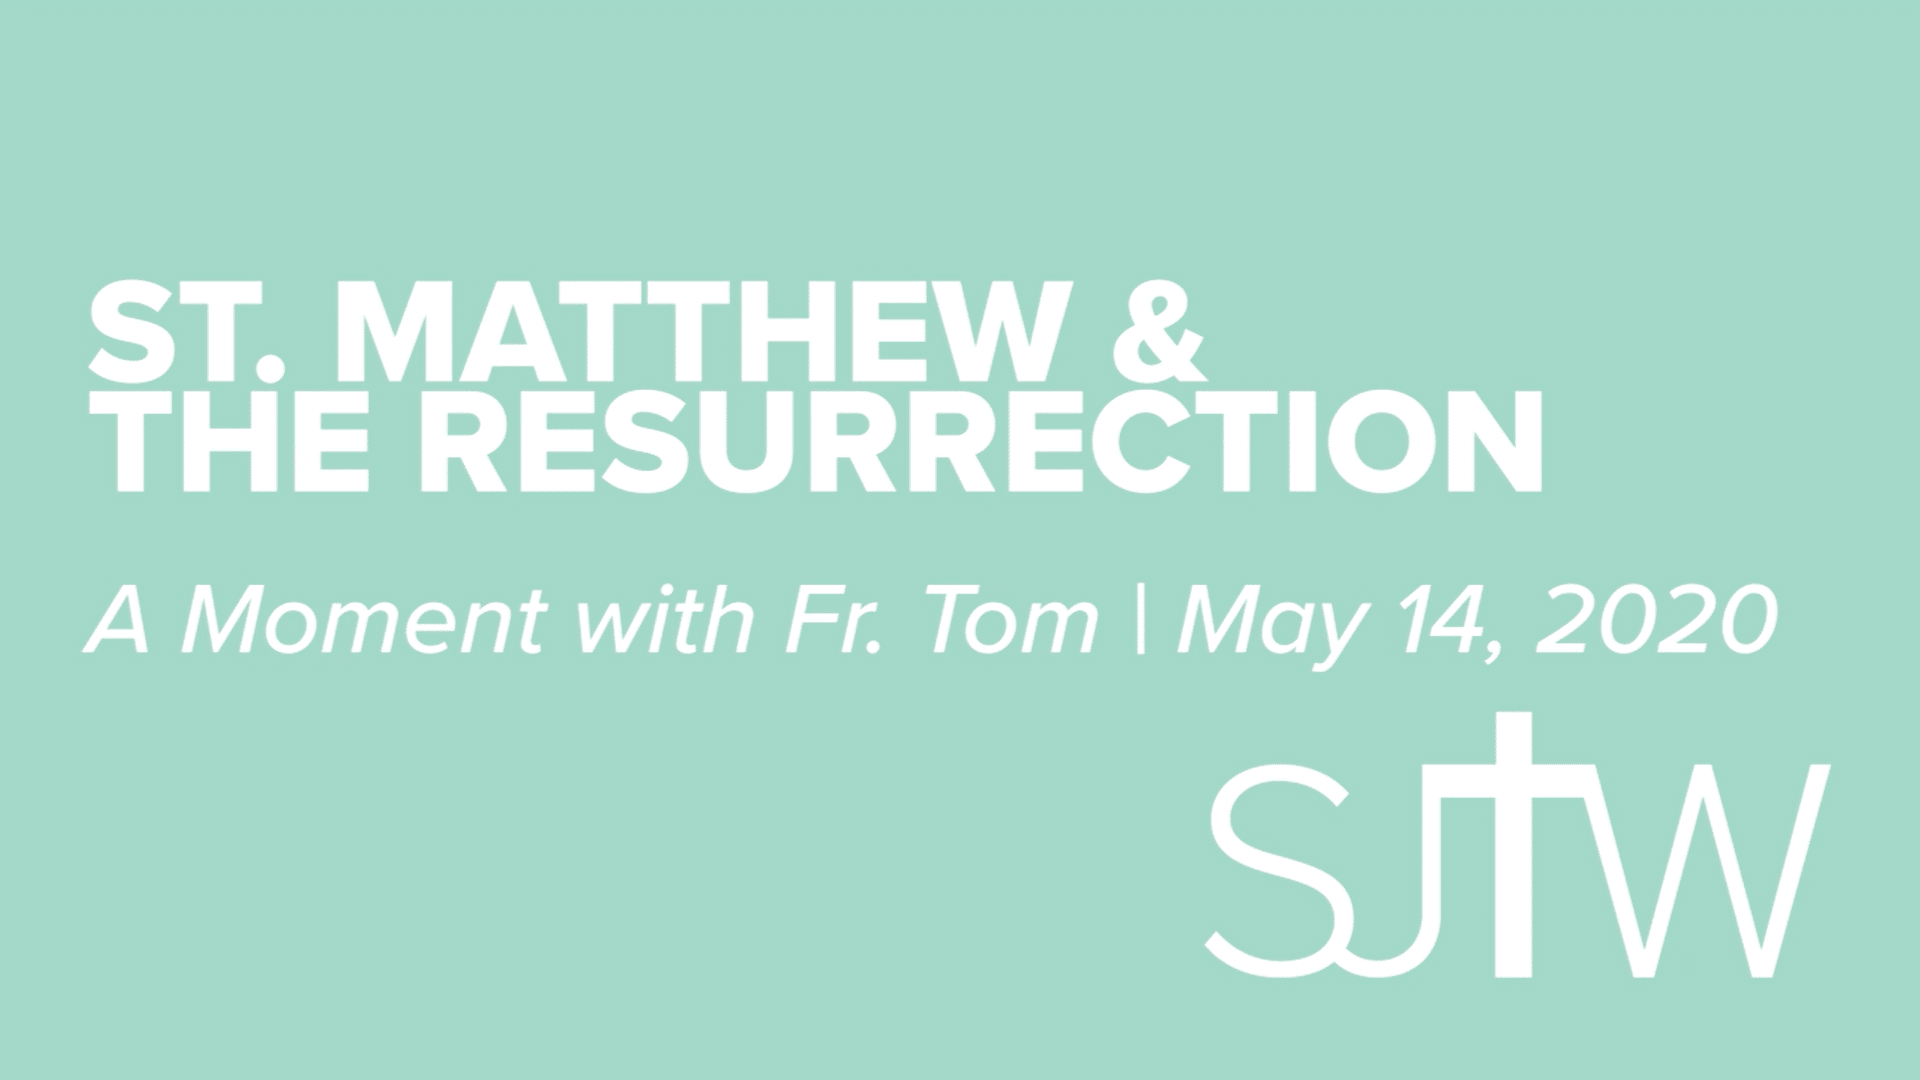 St. Matthew & The Resurrection | A Moment with Father Tom